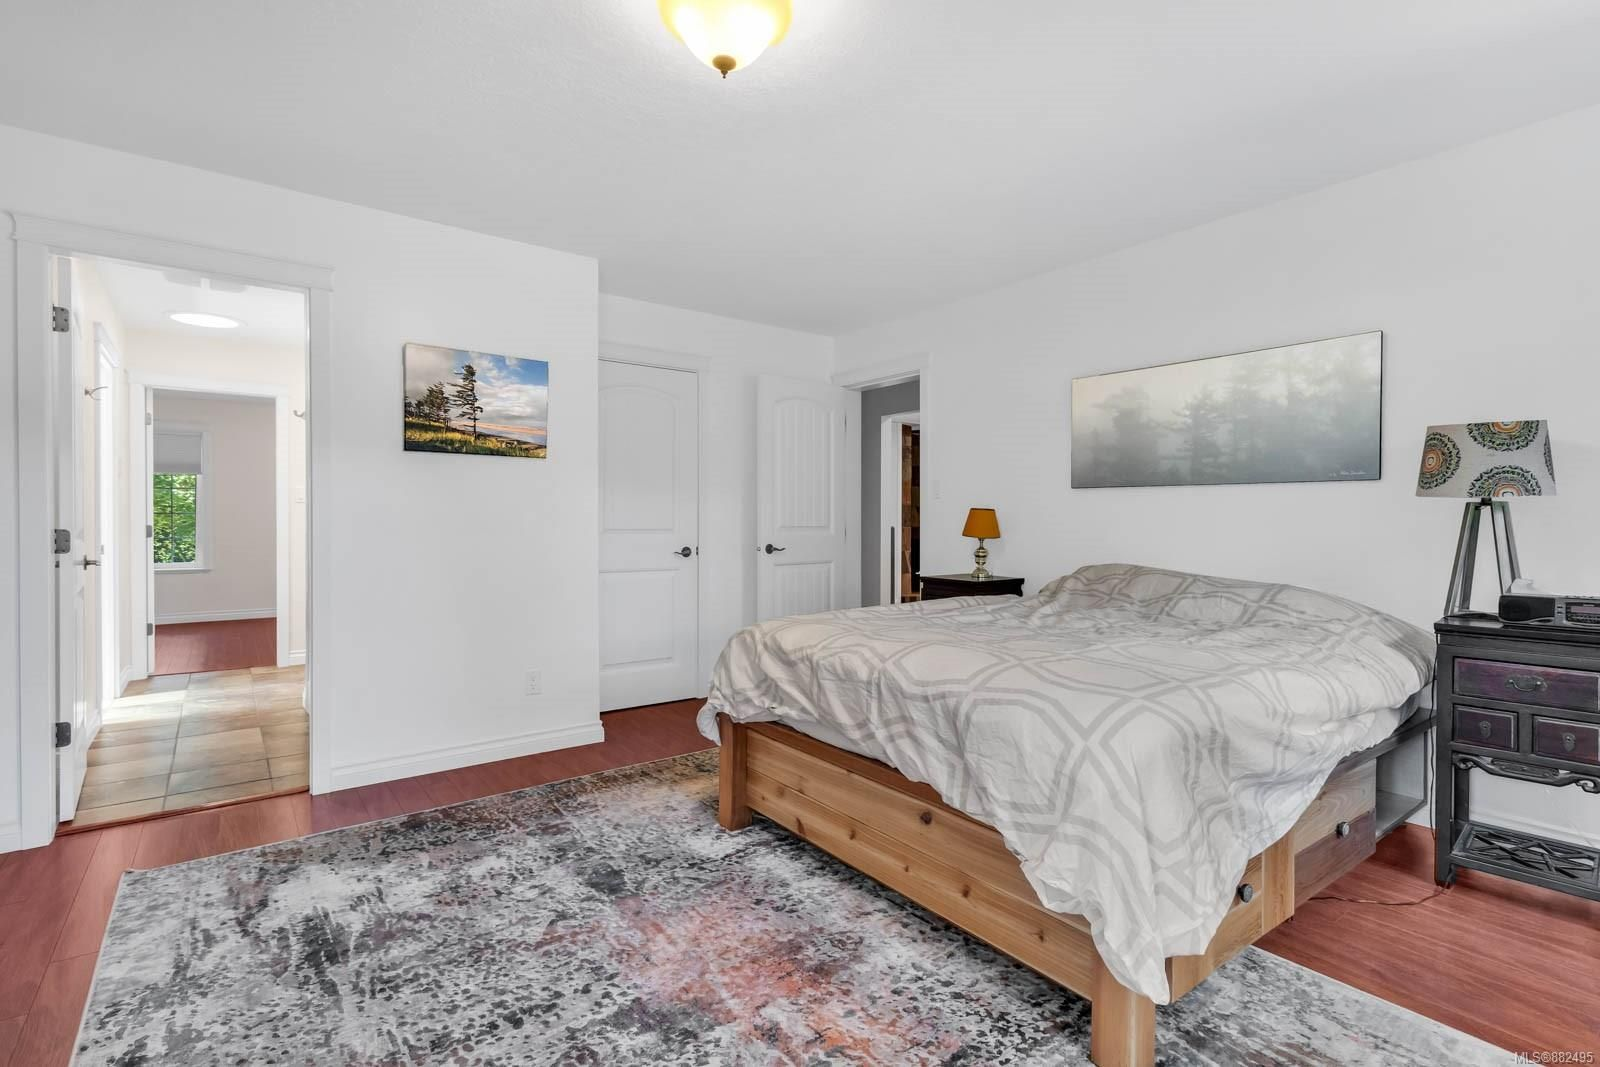 Photo 18: Photos: 375 Butchers Rd in : CV Comox (Town of) House for sale (Comox Valley)  : MLS®# 882495